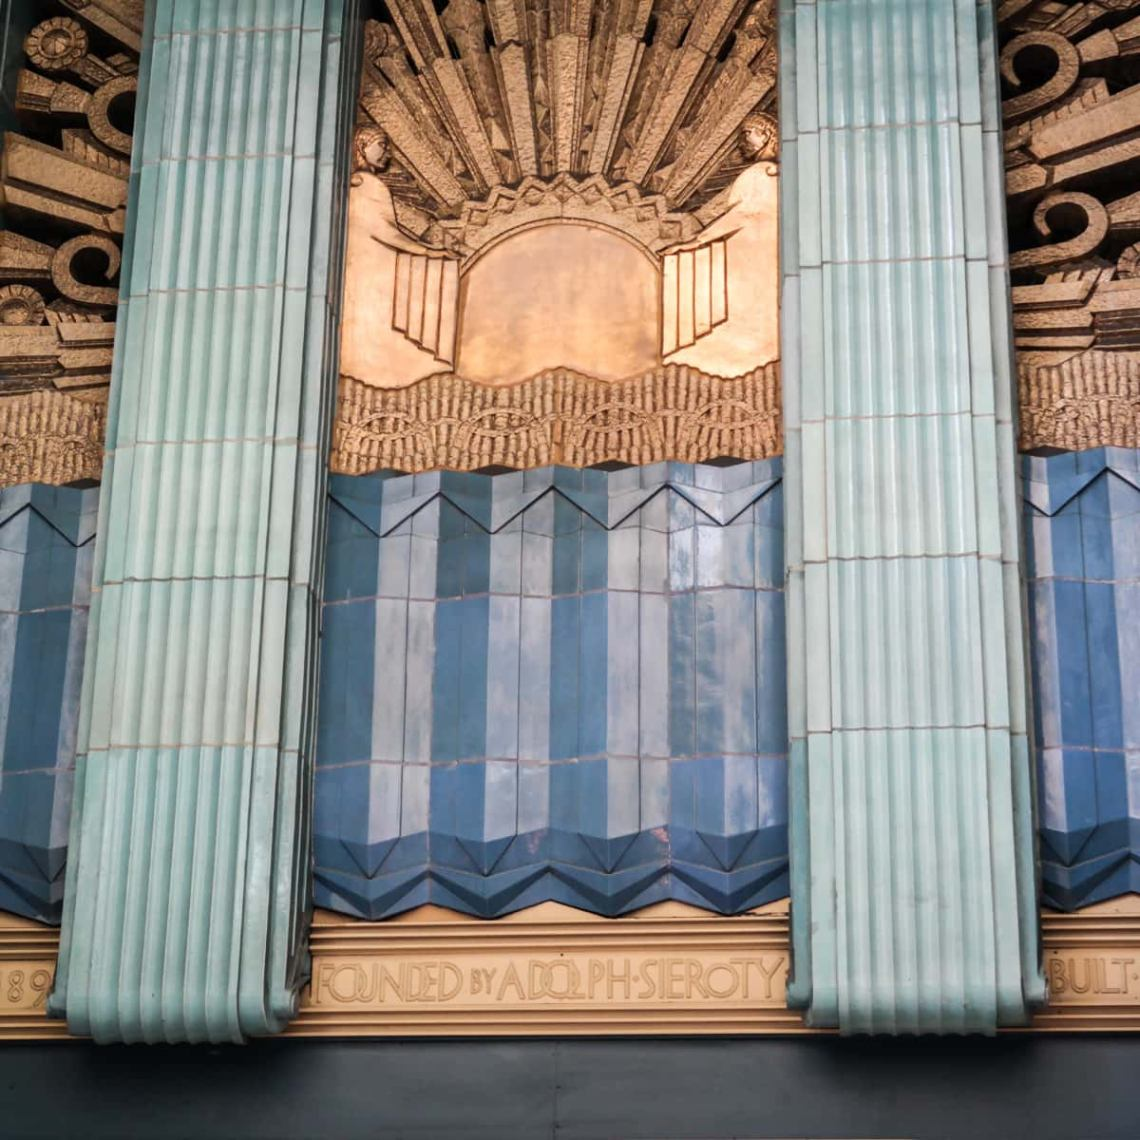 Art Deco The Opulent Style That Still Inspires Our Imaginations